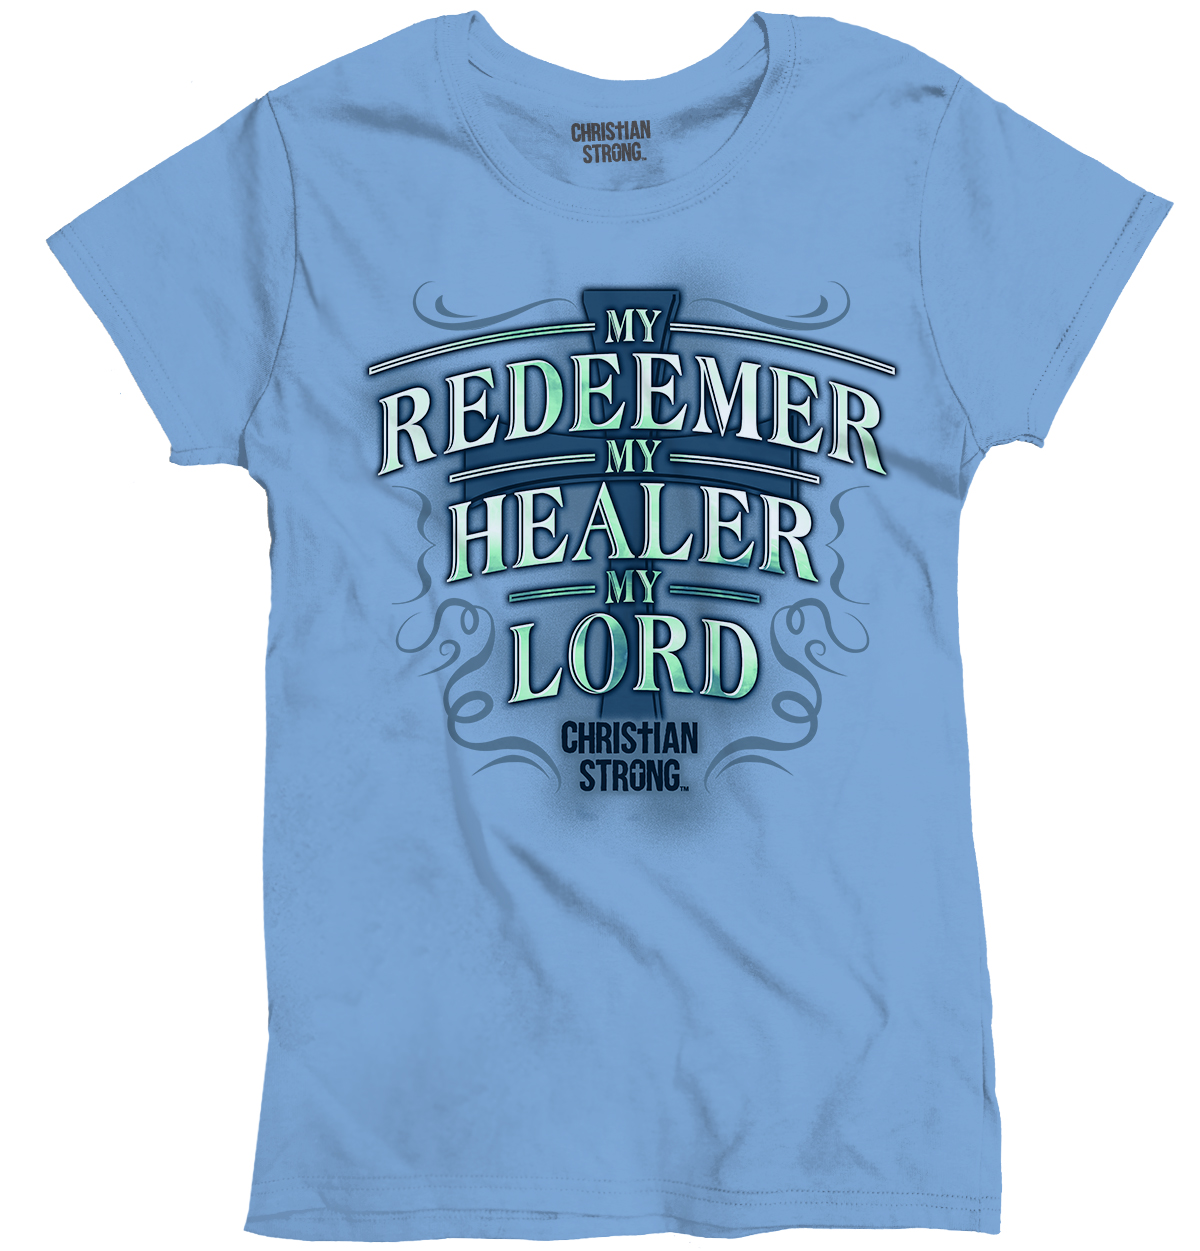 Christian Religious T Shirt My Redeemer Healer Lord Womens Tee by Christian Strong